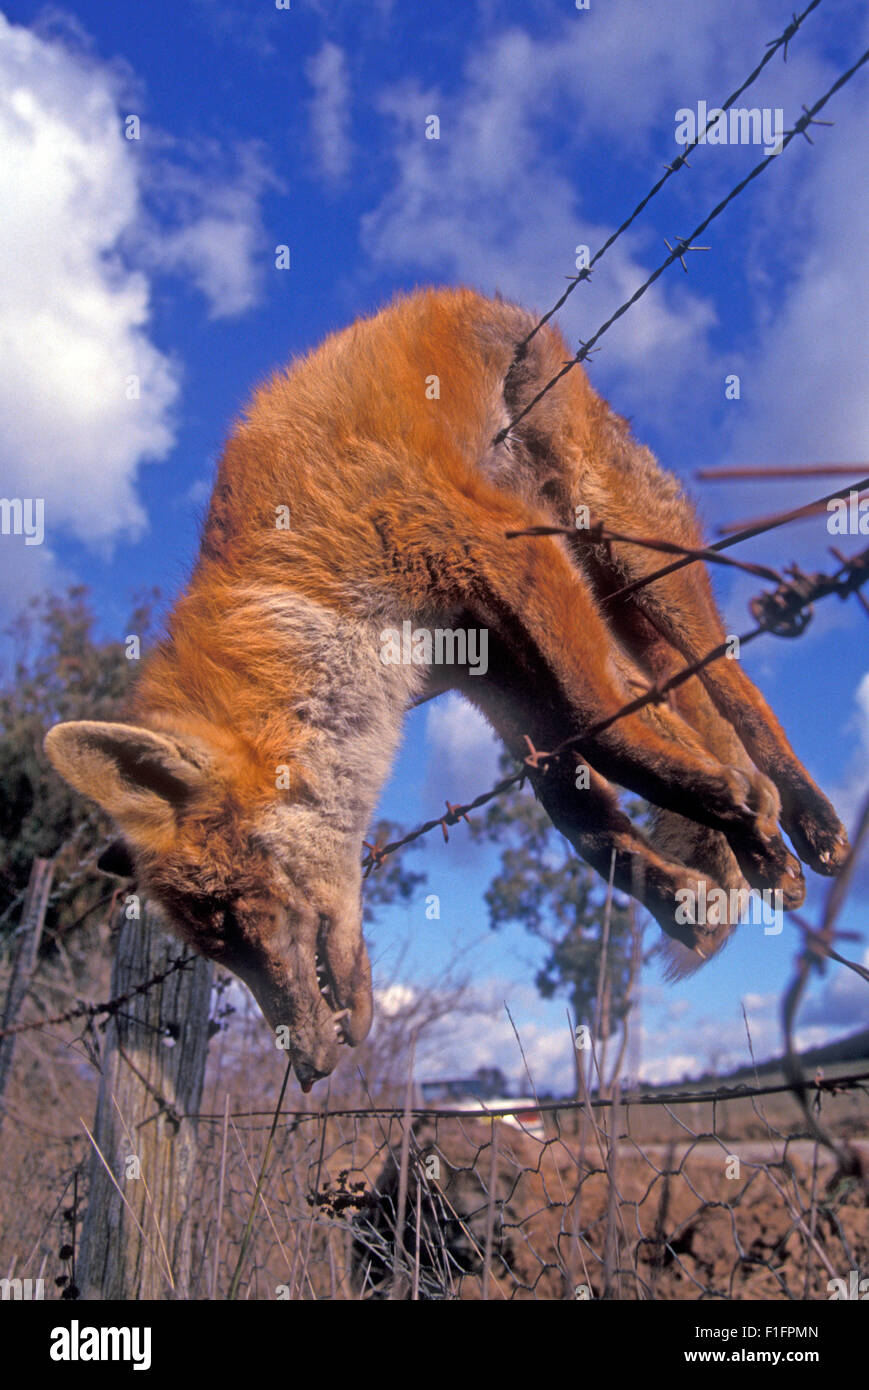 Dead fox hung over a barbed wire fence, rural New South Wales, Australia. - Stock Image